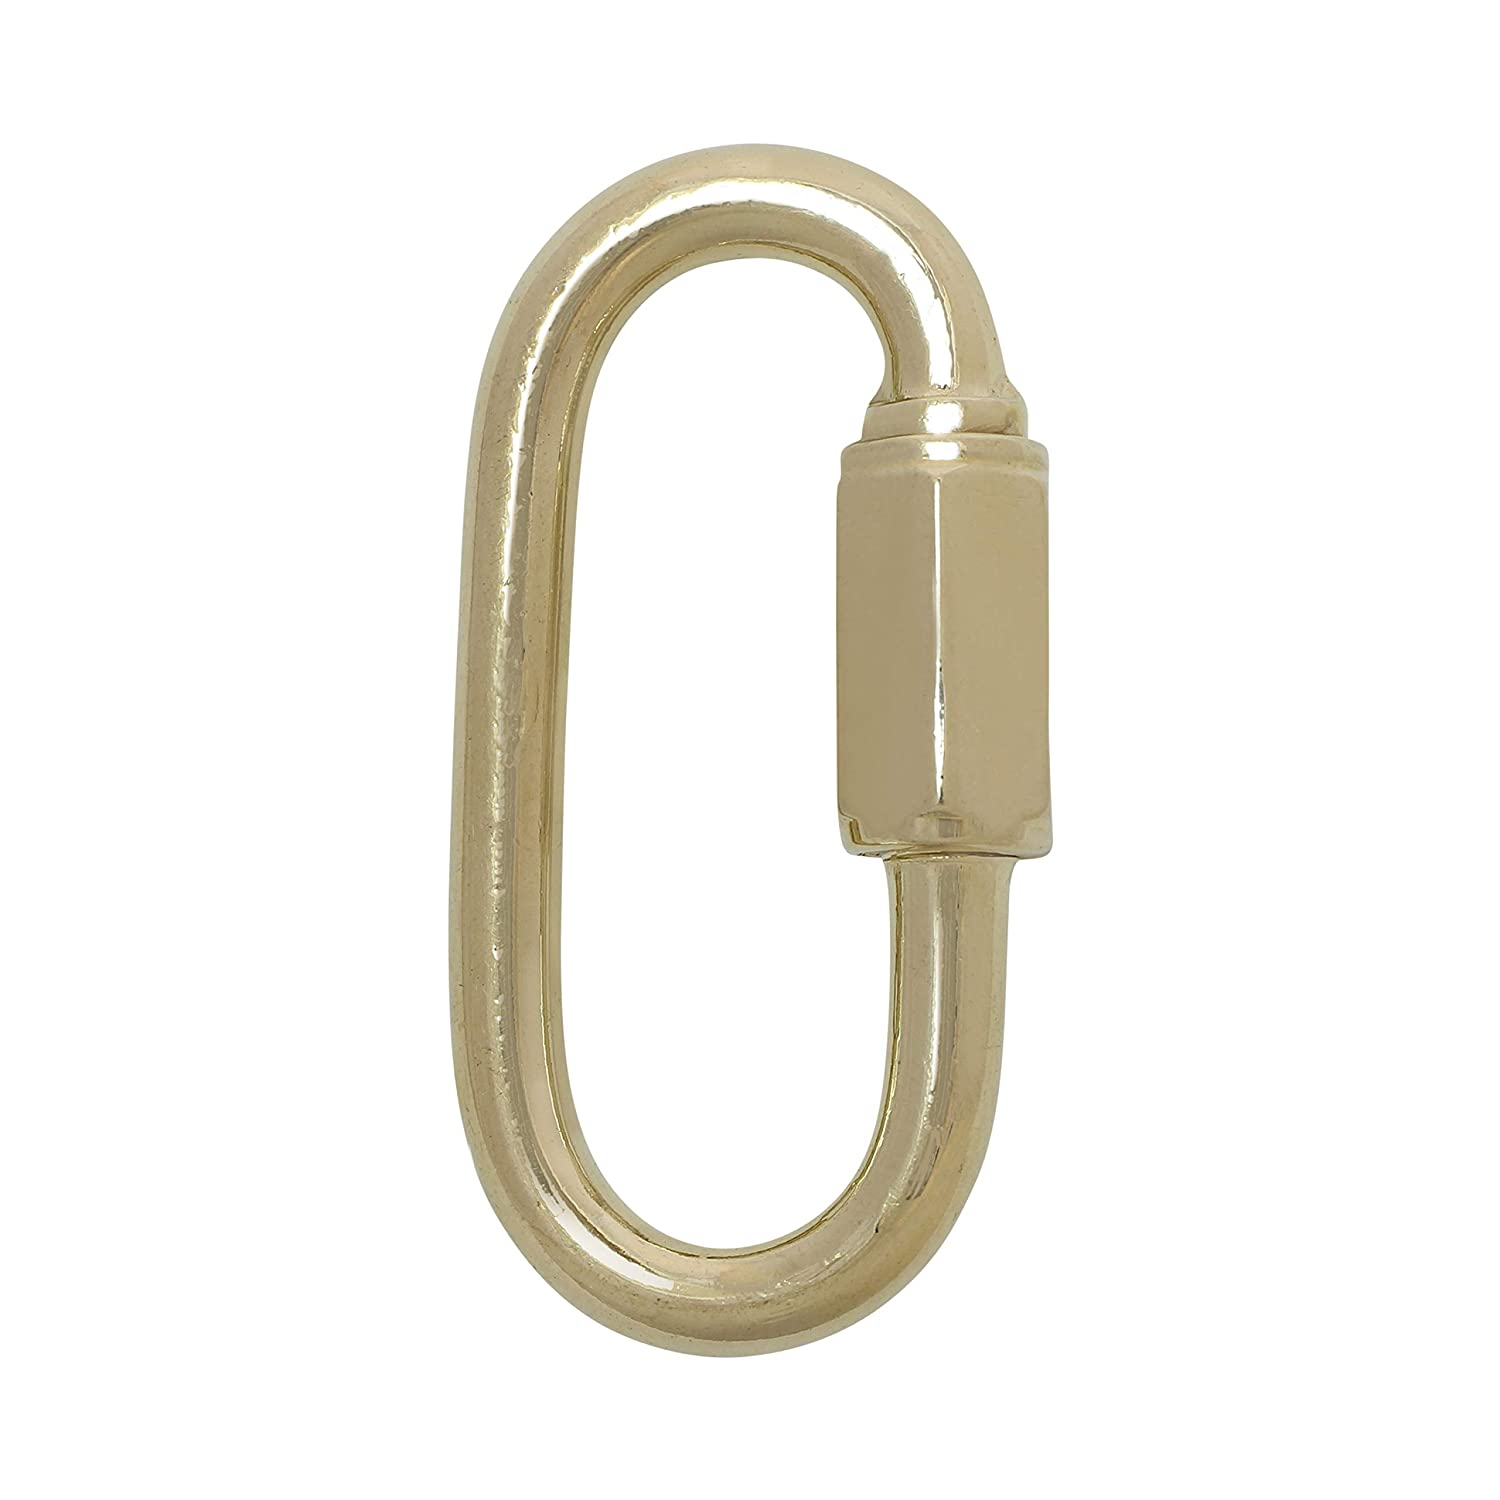 2 Pack 1 Gauge RCH Hardware QL-SS03-75 Stainless Steel Quick Link Polished Brass